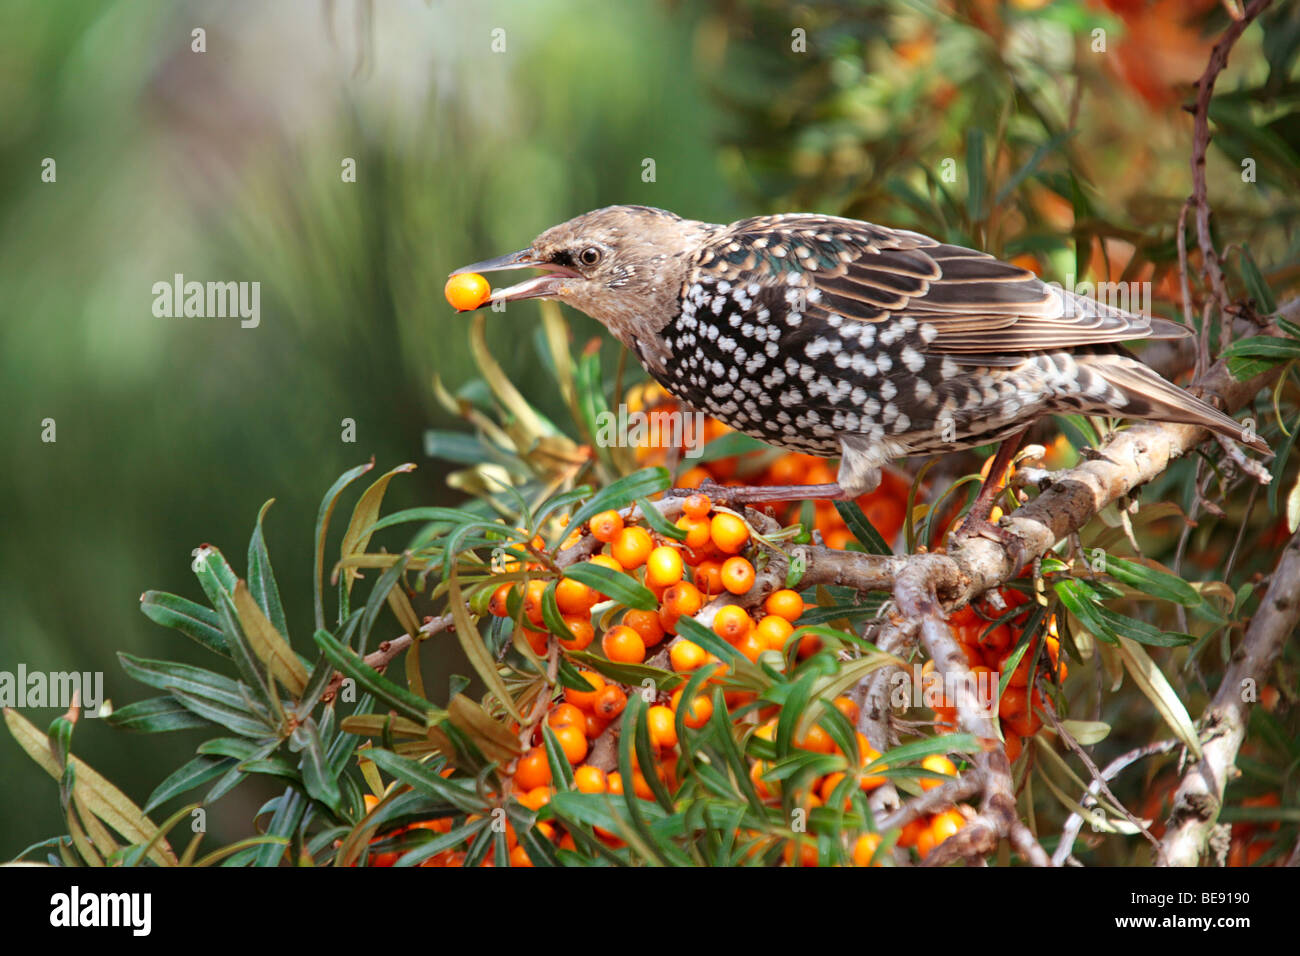 Starling (Sturnus vulgaris) eating a Sea-buckthorn berry (Hippophae rhamnoides) Stock Photo